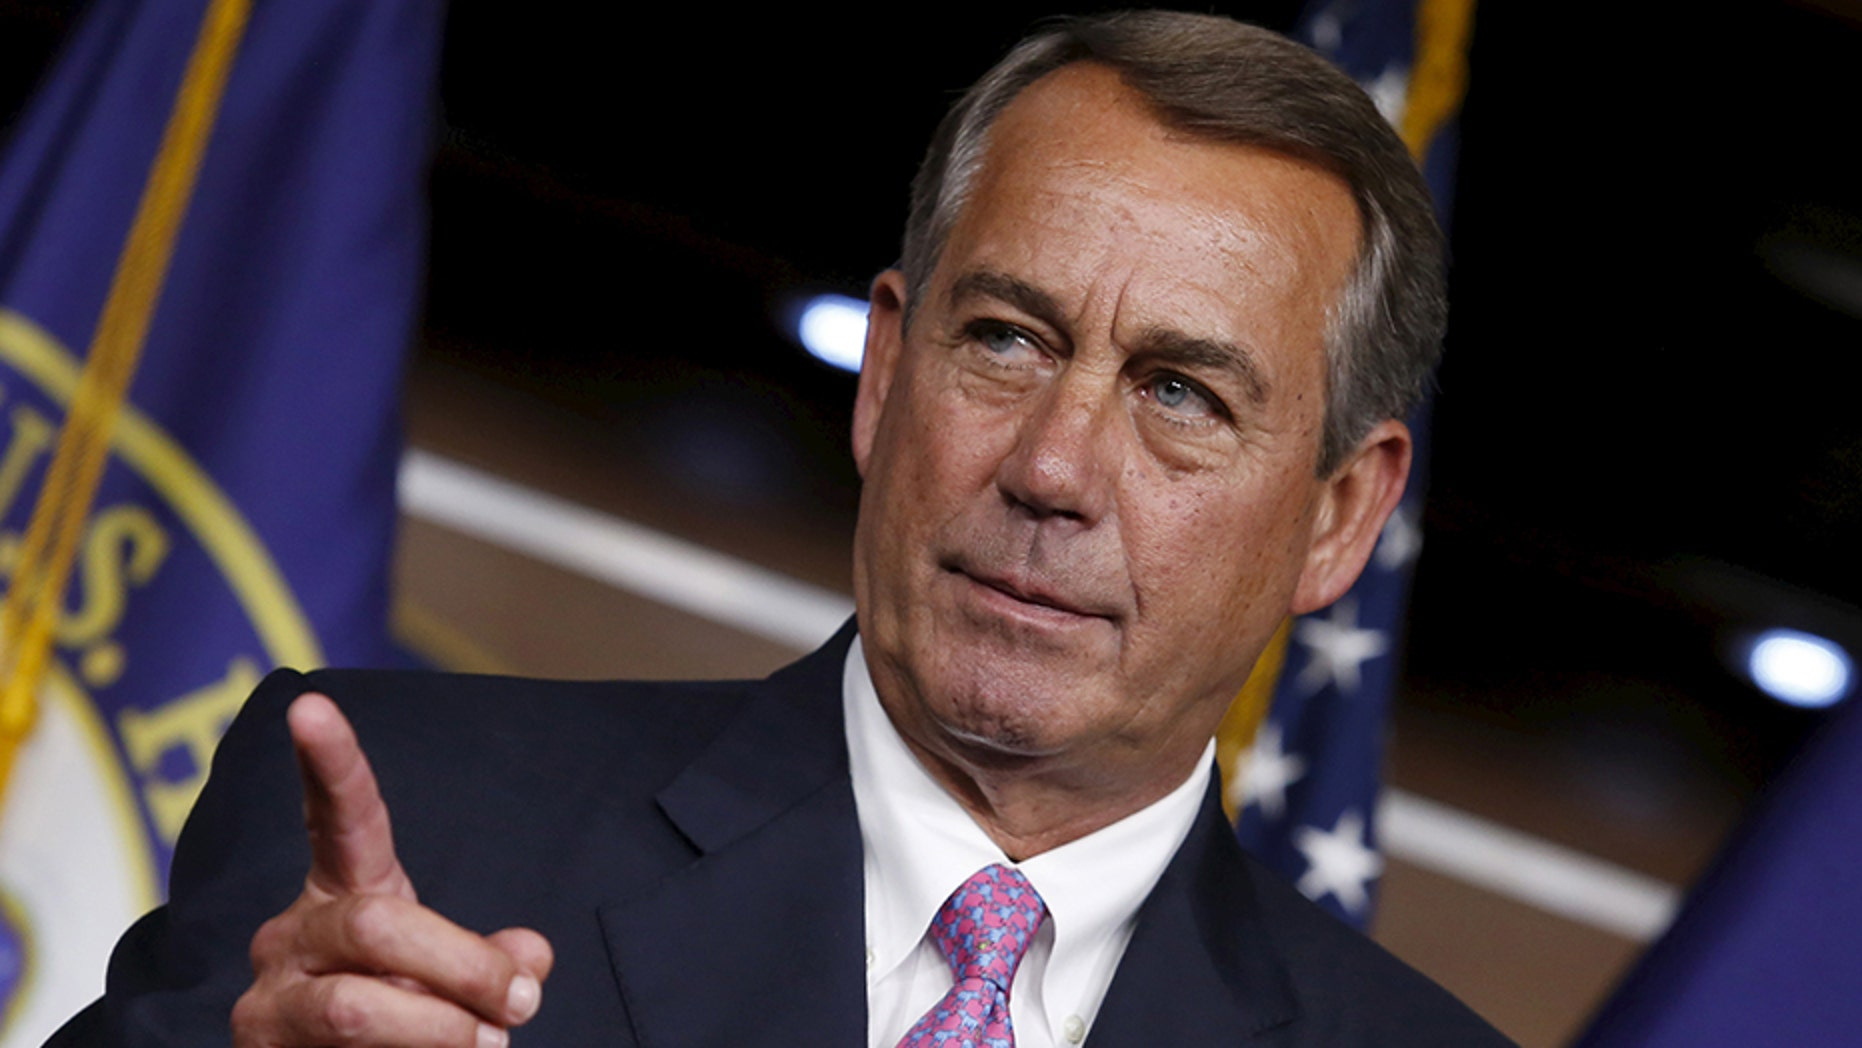 Ohio Republican John Boehner retired from Capitol Hill as speaker in 2015 — and now has harsh words for his House coworkers. (REUTERS/Yuri Gripas)